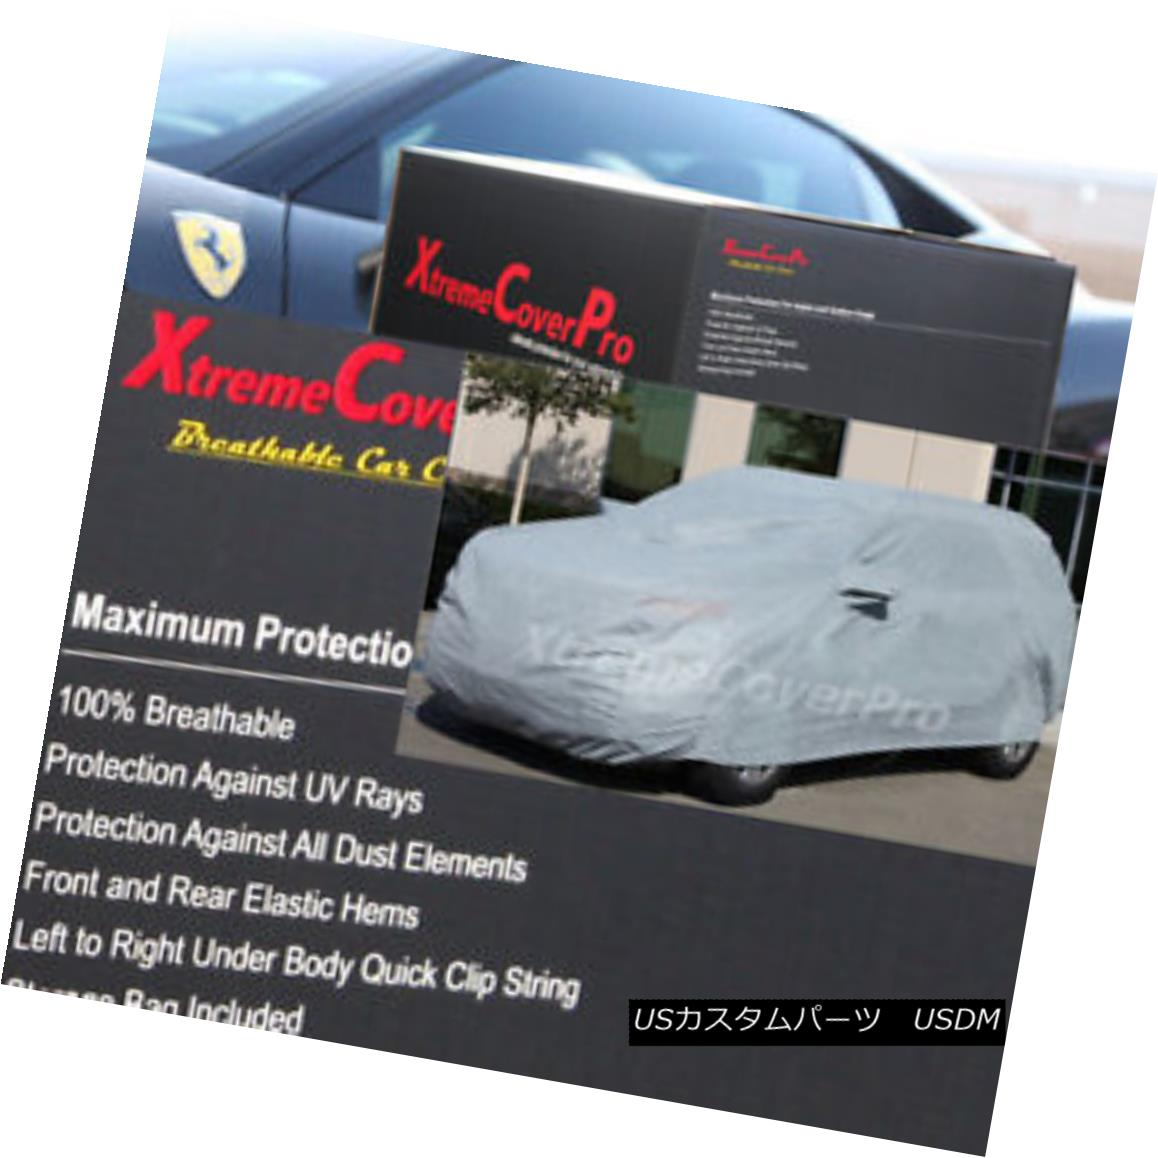 カーカバー 2016 2017 2018 TOYOTA HIGHLANDER BREATHABLE CAR COVER W/MIRROR POCKET - GREY 2016 2017 2018 TOYOTA HIGHLANDERブレアブルカーカバー/ミラーポケット - グレー